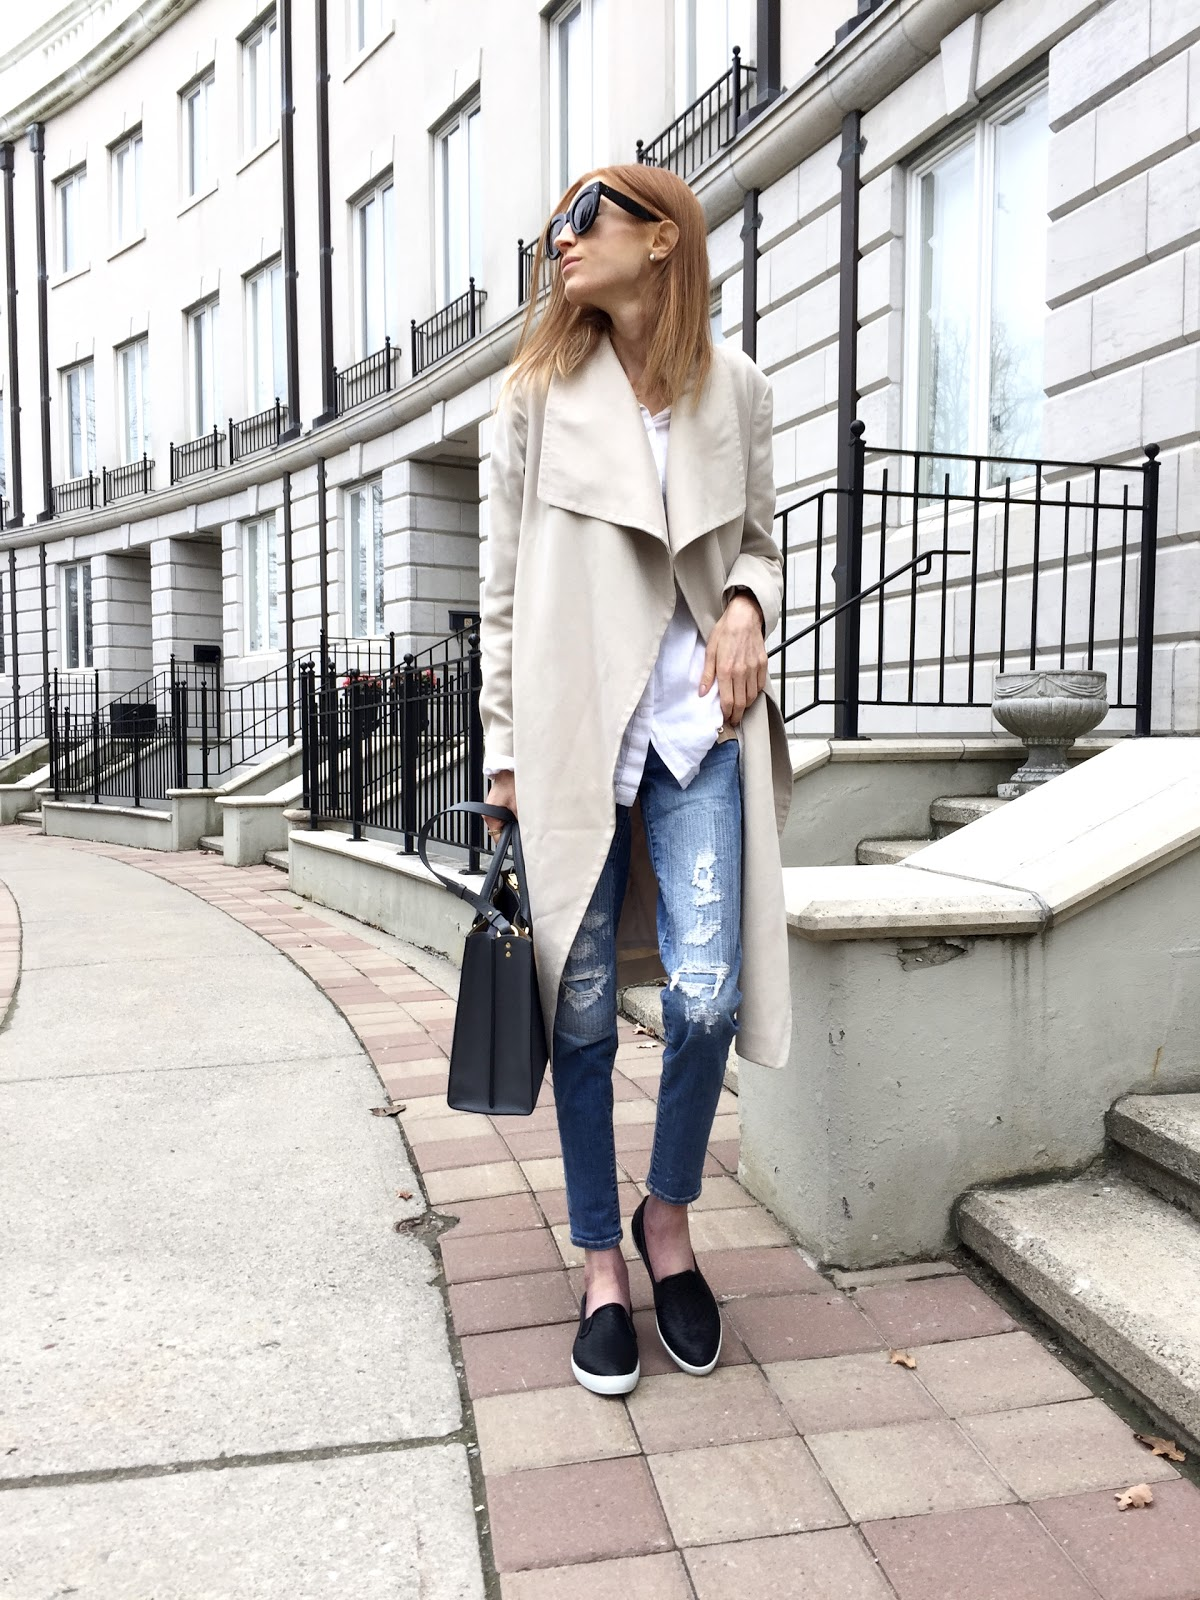 Cougar Boots Swoon, Sophie Hulme Albion tote charcoal grey, Celine Caty sunglasses, American Eagle denim, Club Monaco beige trench, Old Navy boyfriend white blouse